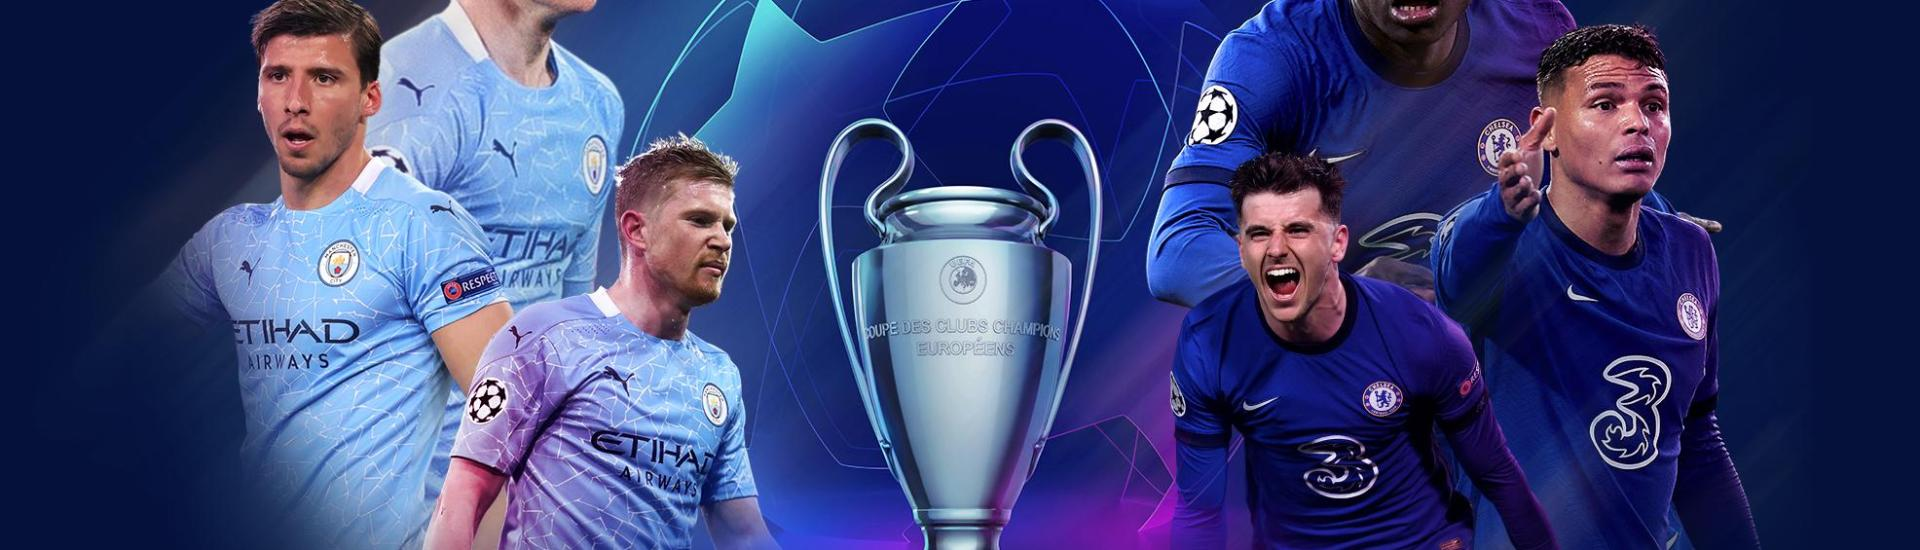 This is for Football fans - The pre-match build-up from Chelsea v Man City